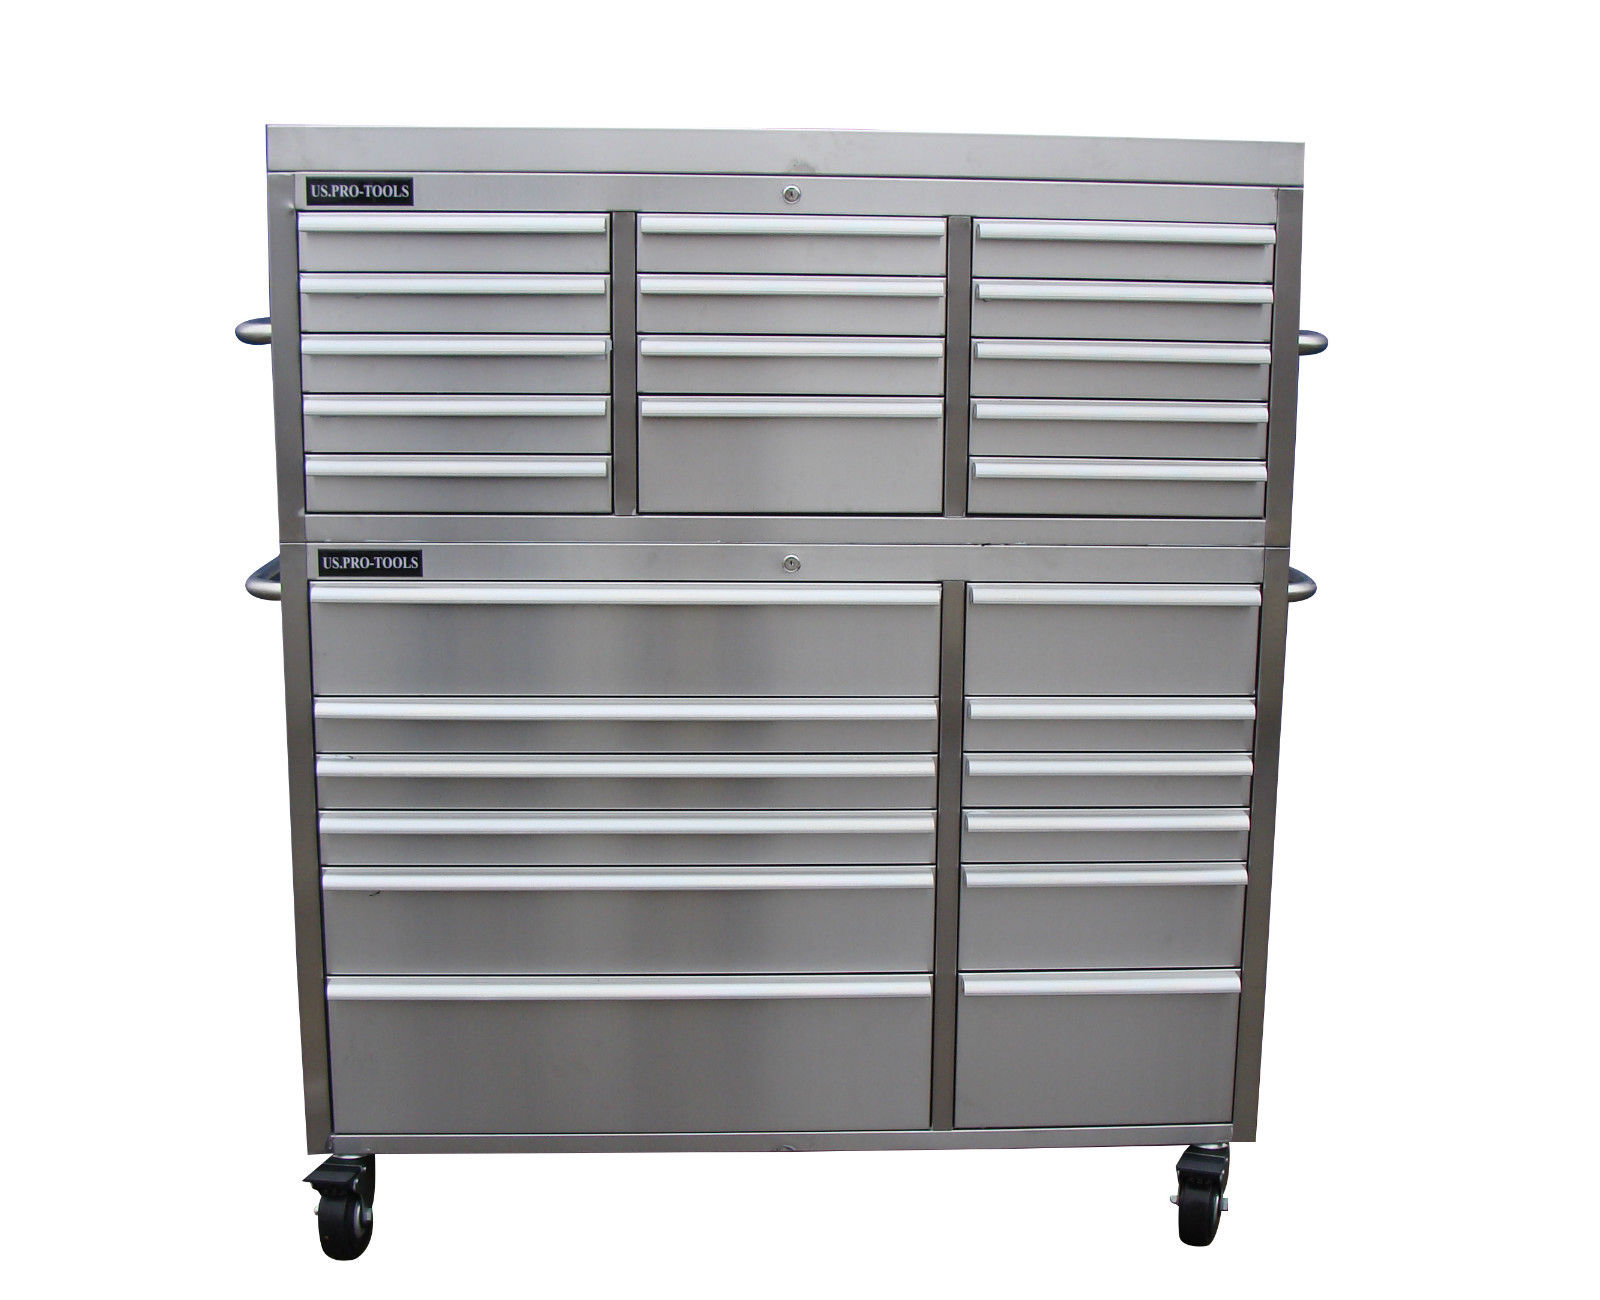 stainless steel tool cabinet us pro tools 54 wide. Black Bedroom Furniture Sets. Home Design Ideas